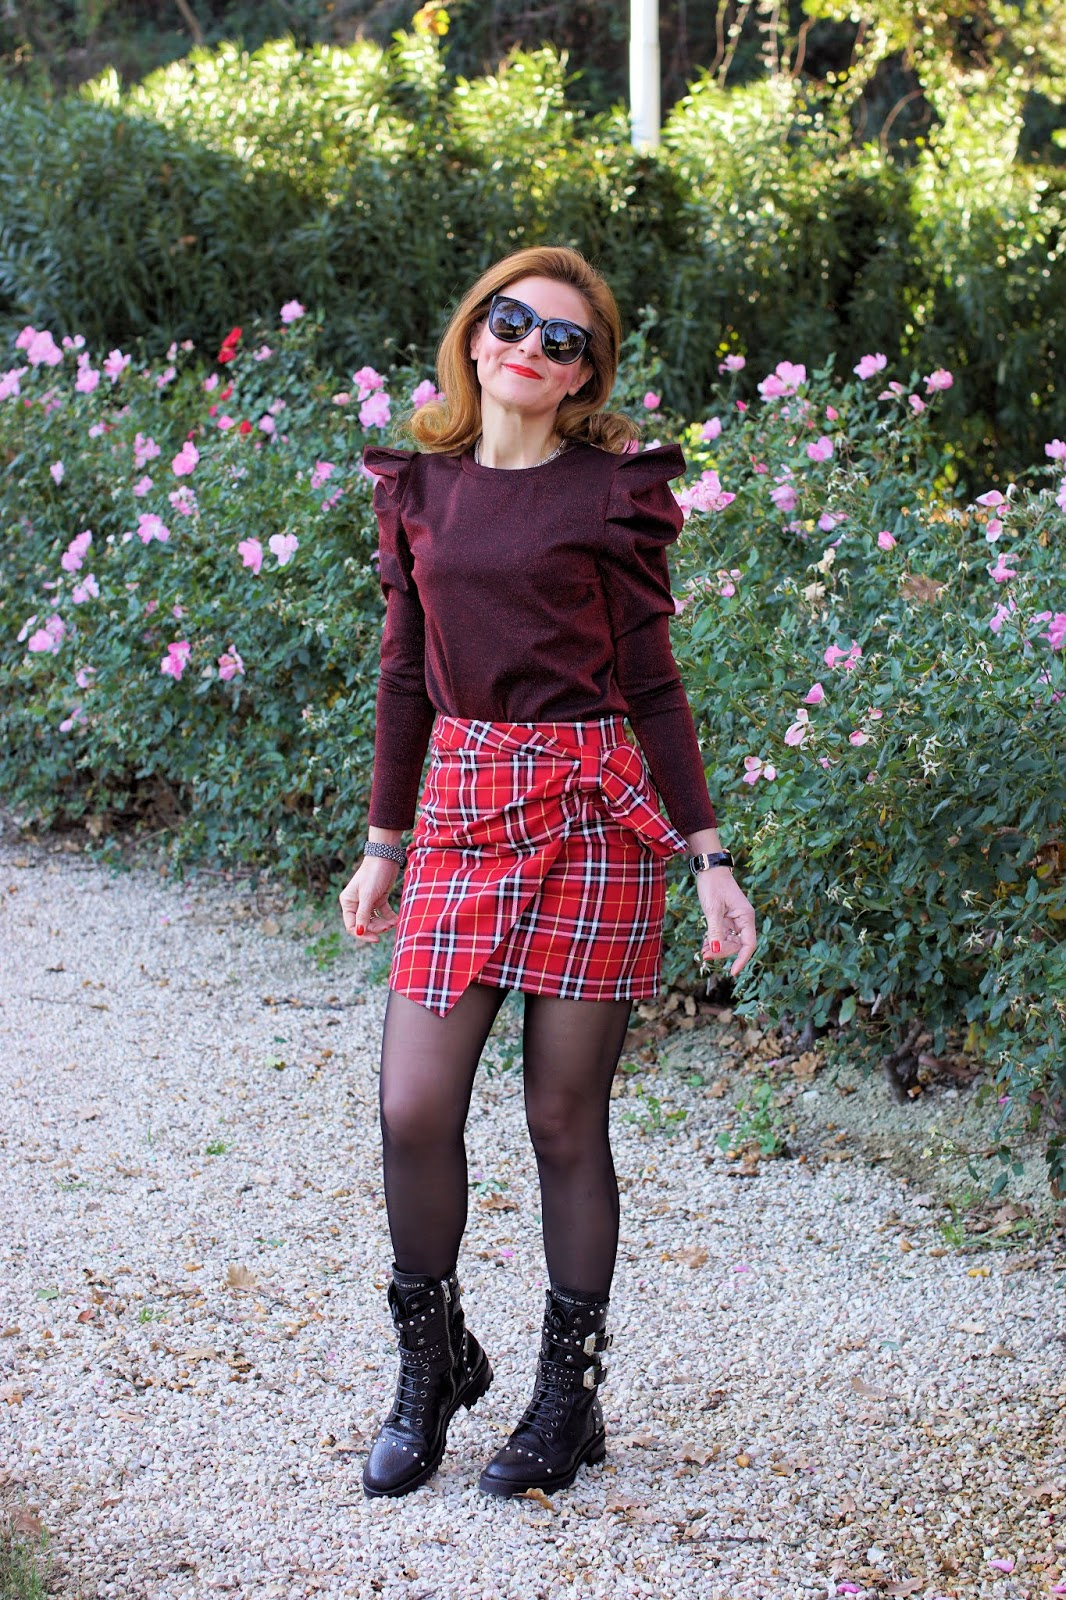 Mini skirt, puffy sleeves top and combat boots on Fashion and Cookies fashion blog, fashion blogger style